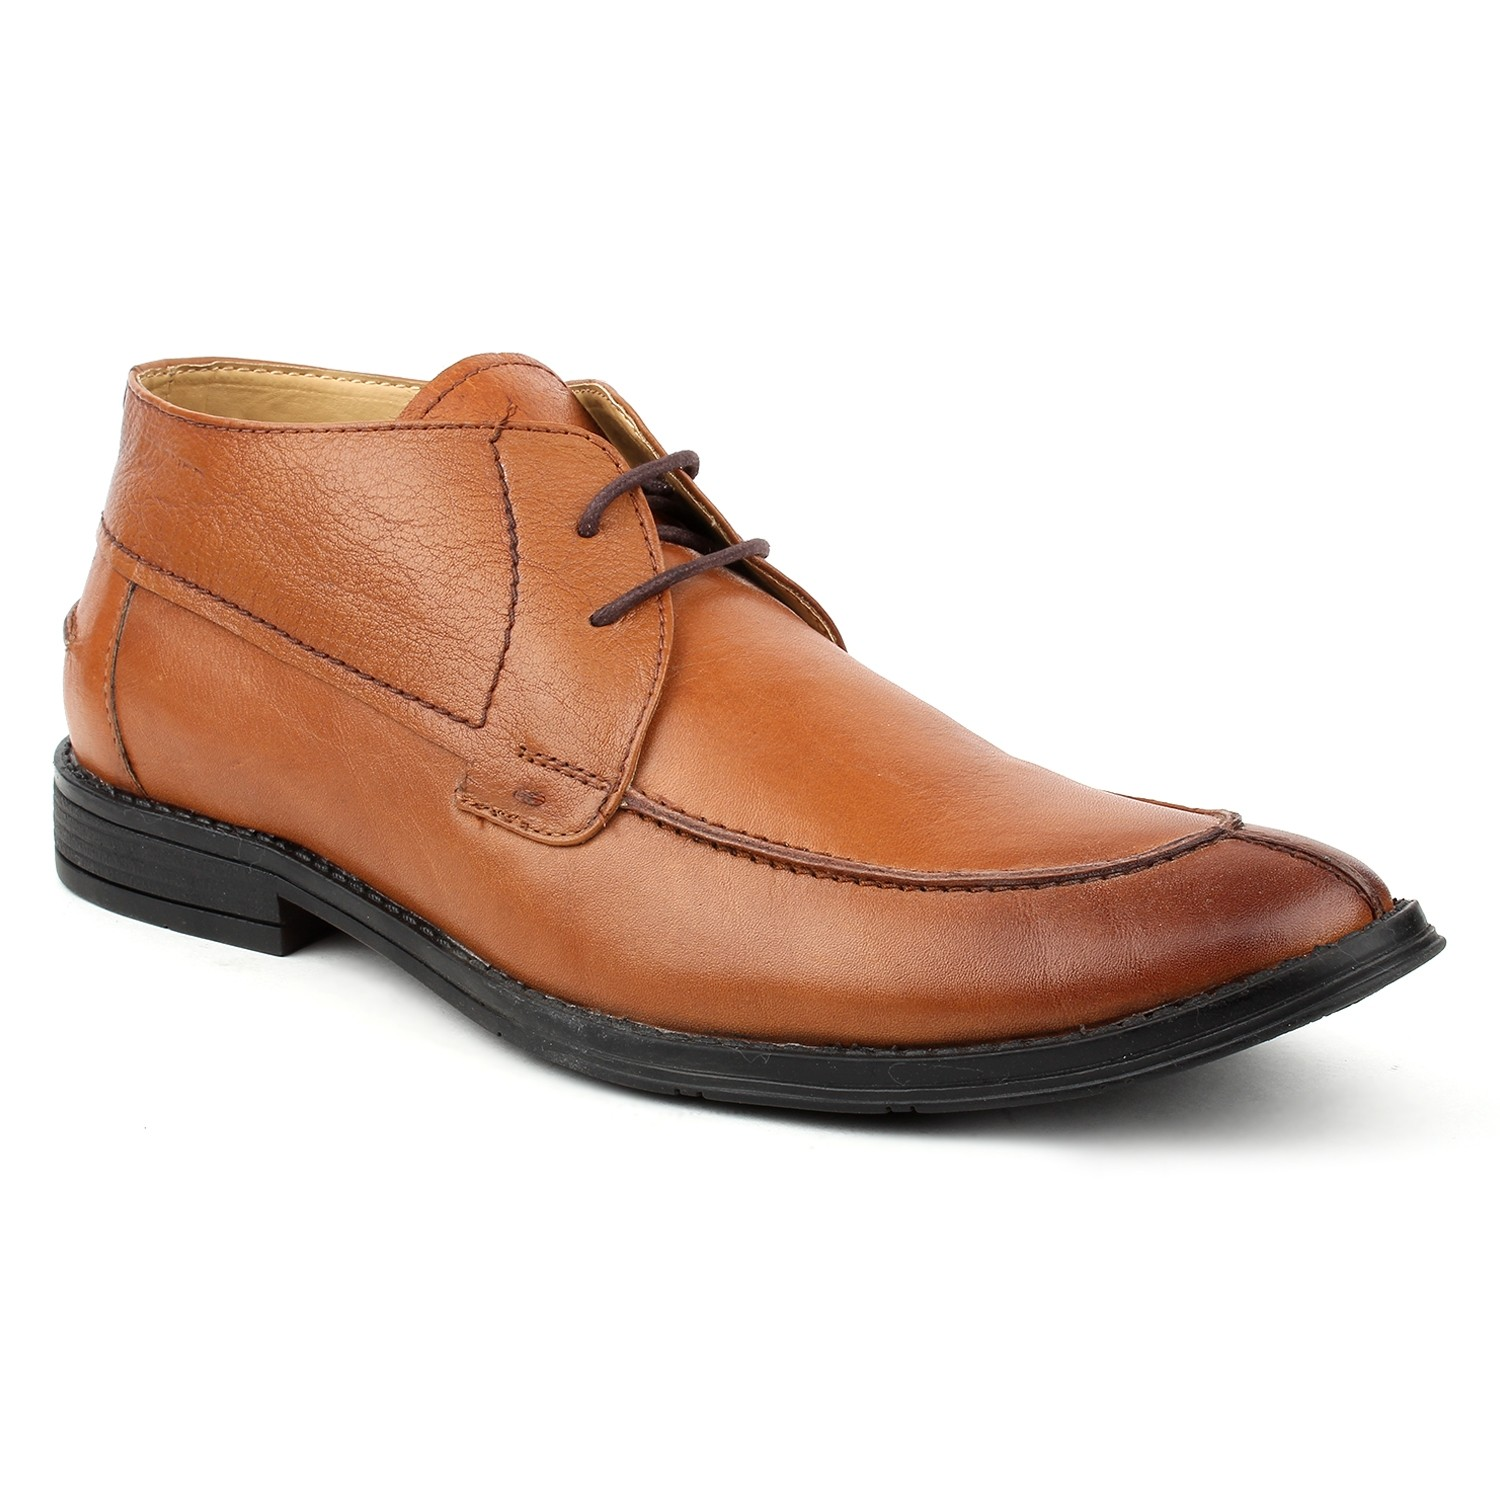 Kosher Leather Tan Shoes Men